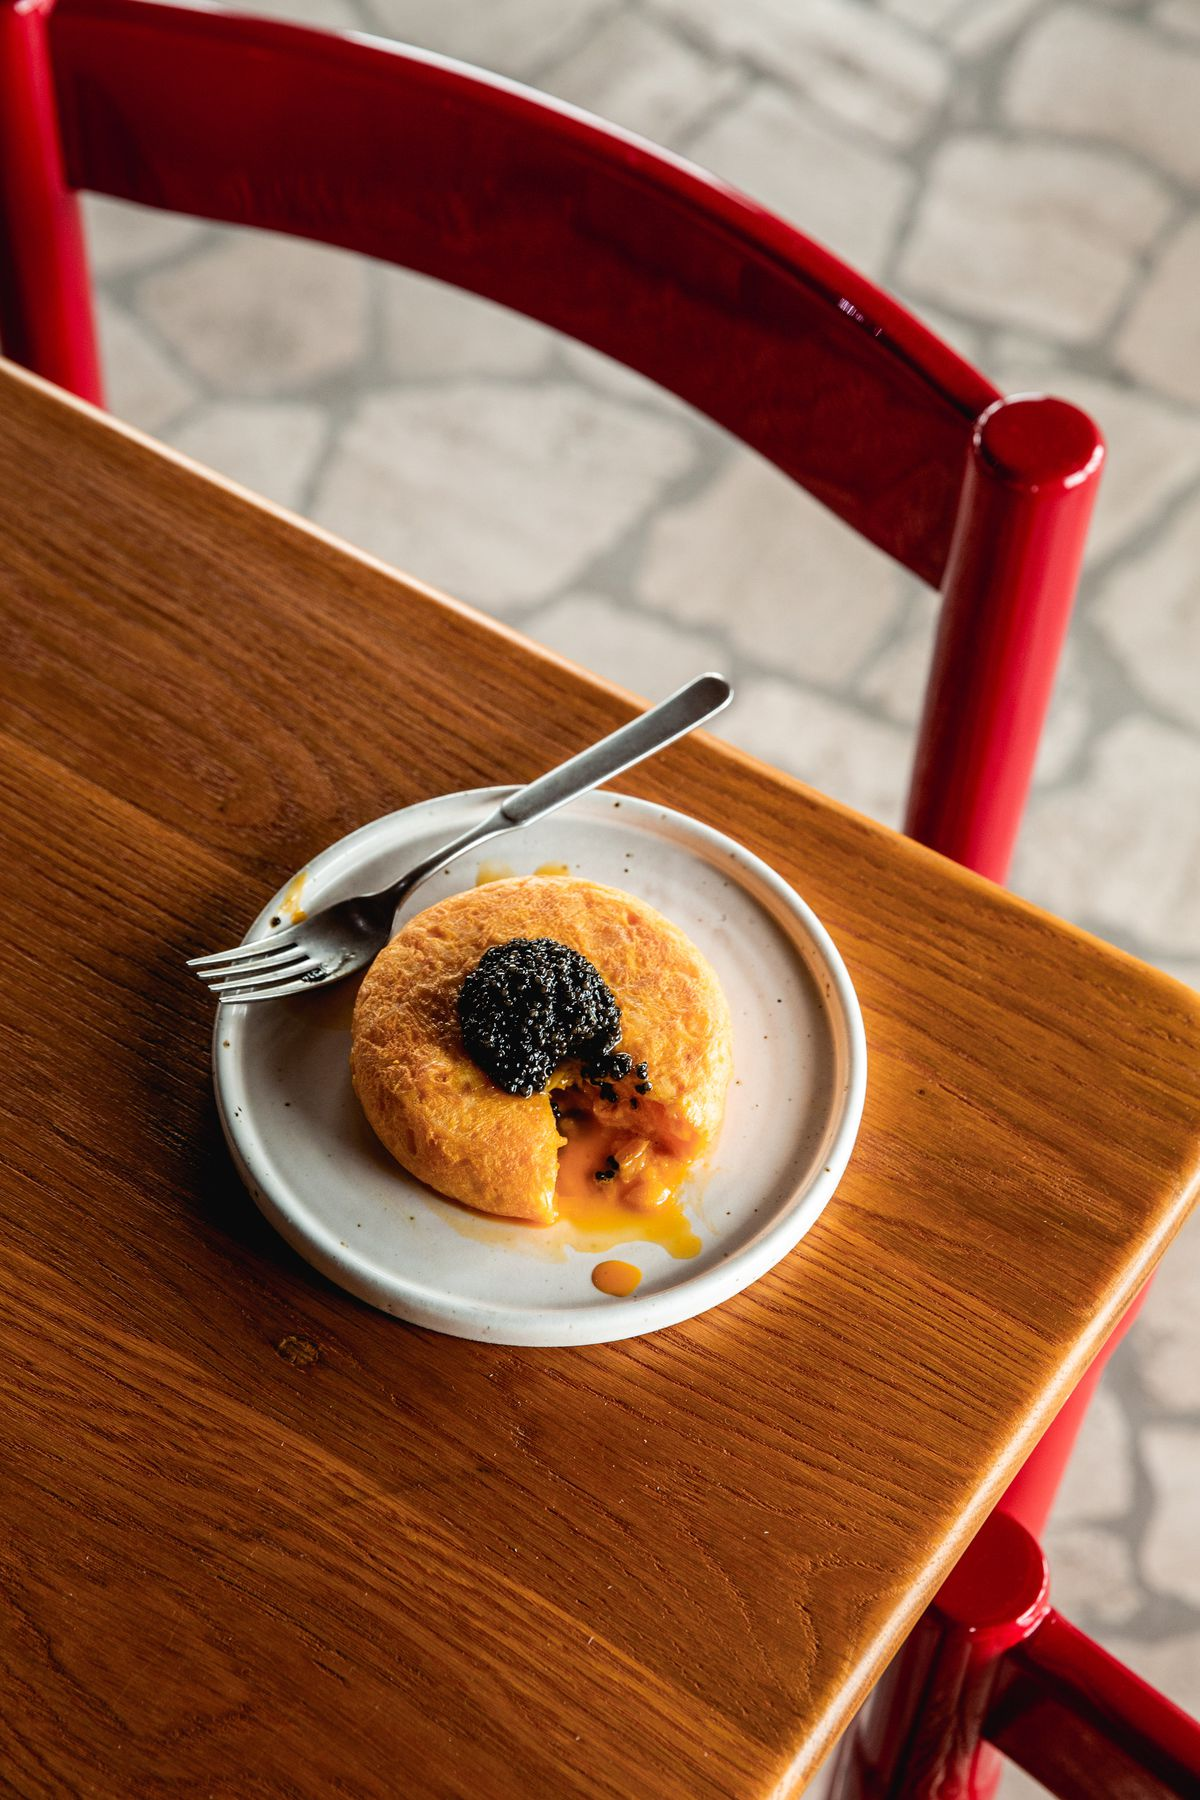 Tortilla with caviar on a wooden table with a red chair at Decimo, the new King's Cross restaurant by chef Peter Sanchez Iglesias at The Standard Hotel London